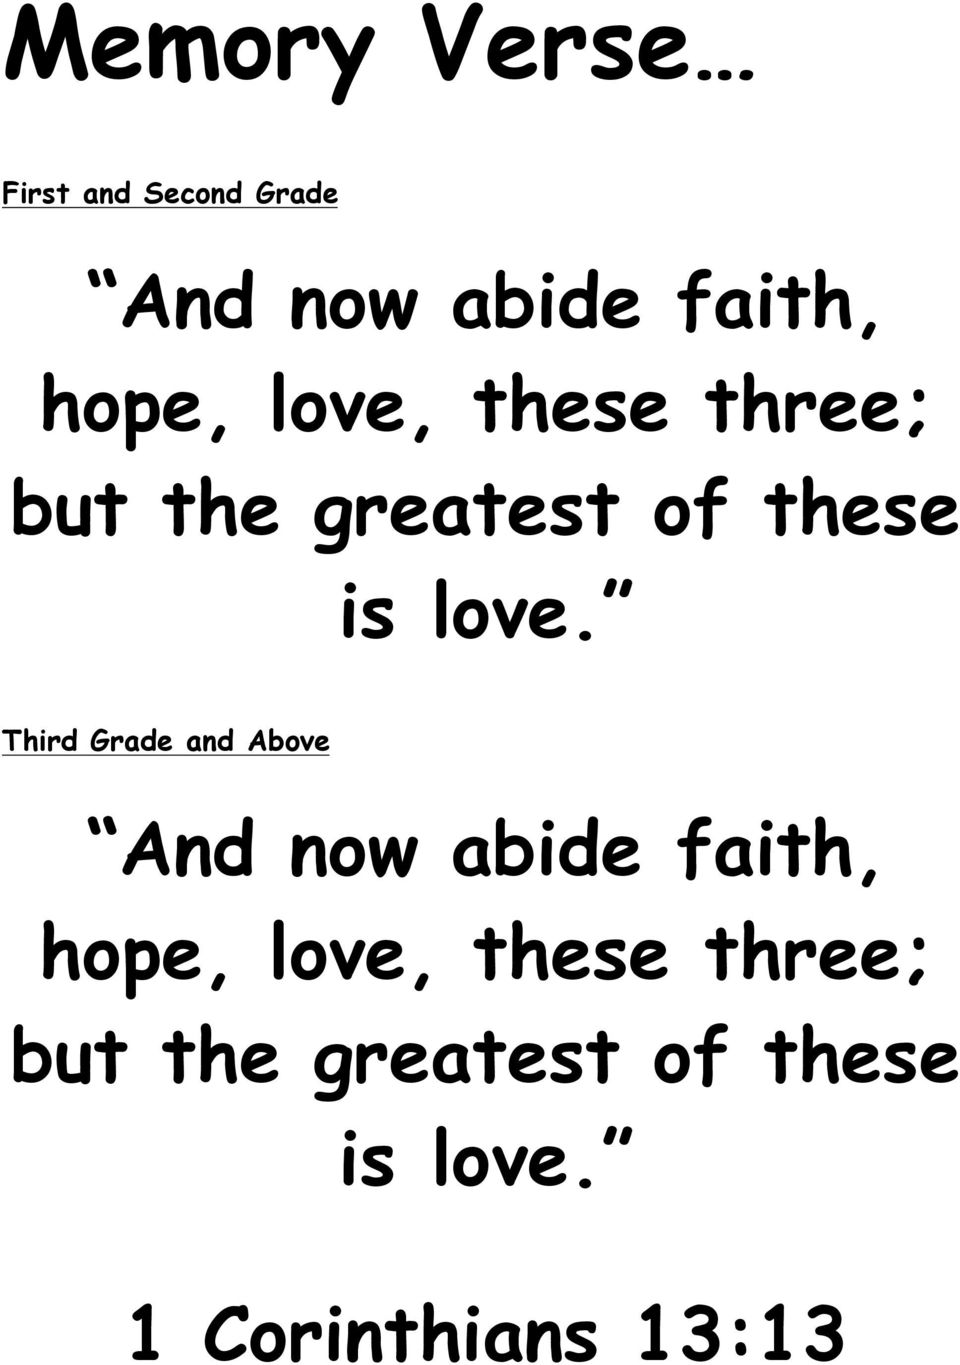 Third Grade and Above And now abide faith,  1 Corinthians